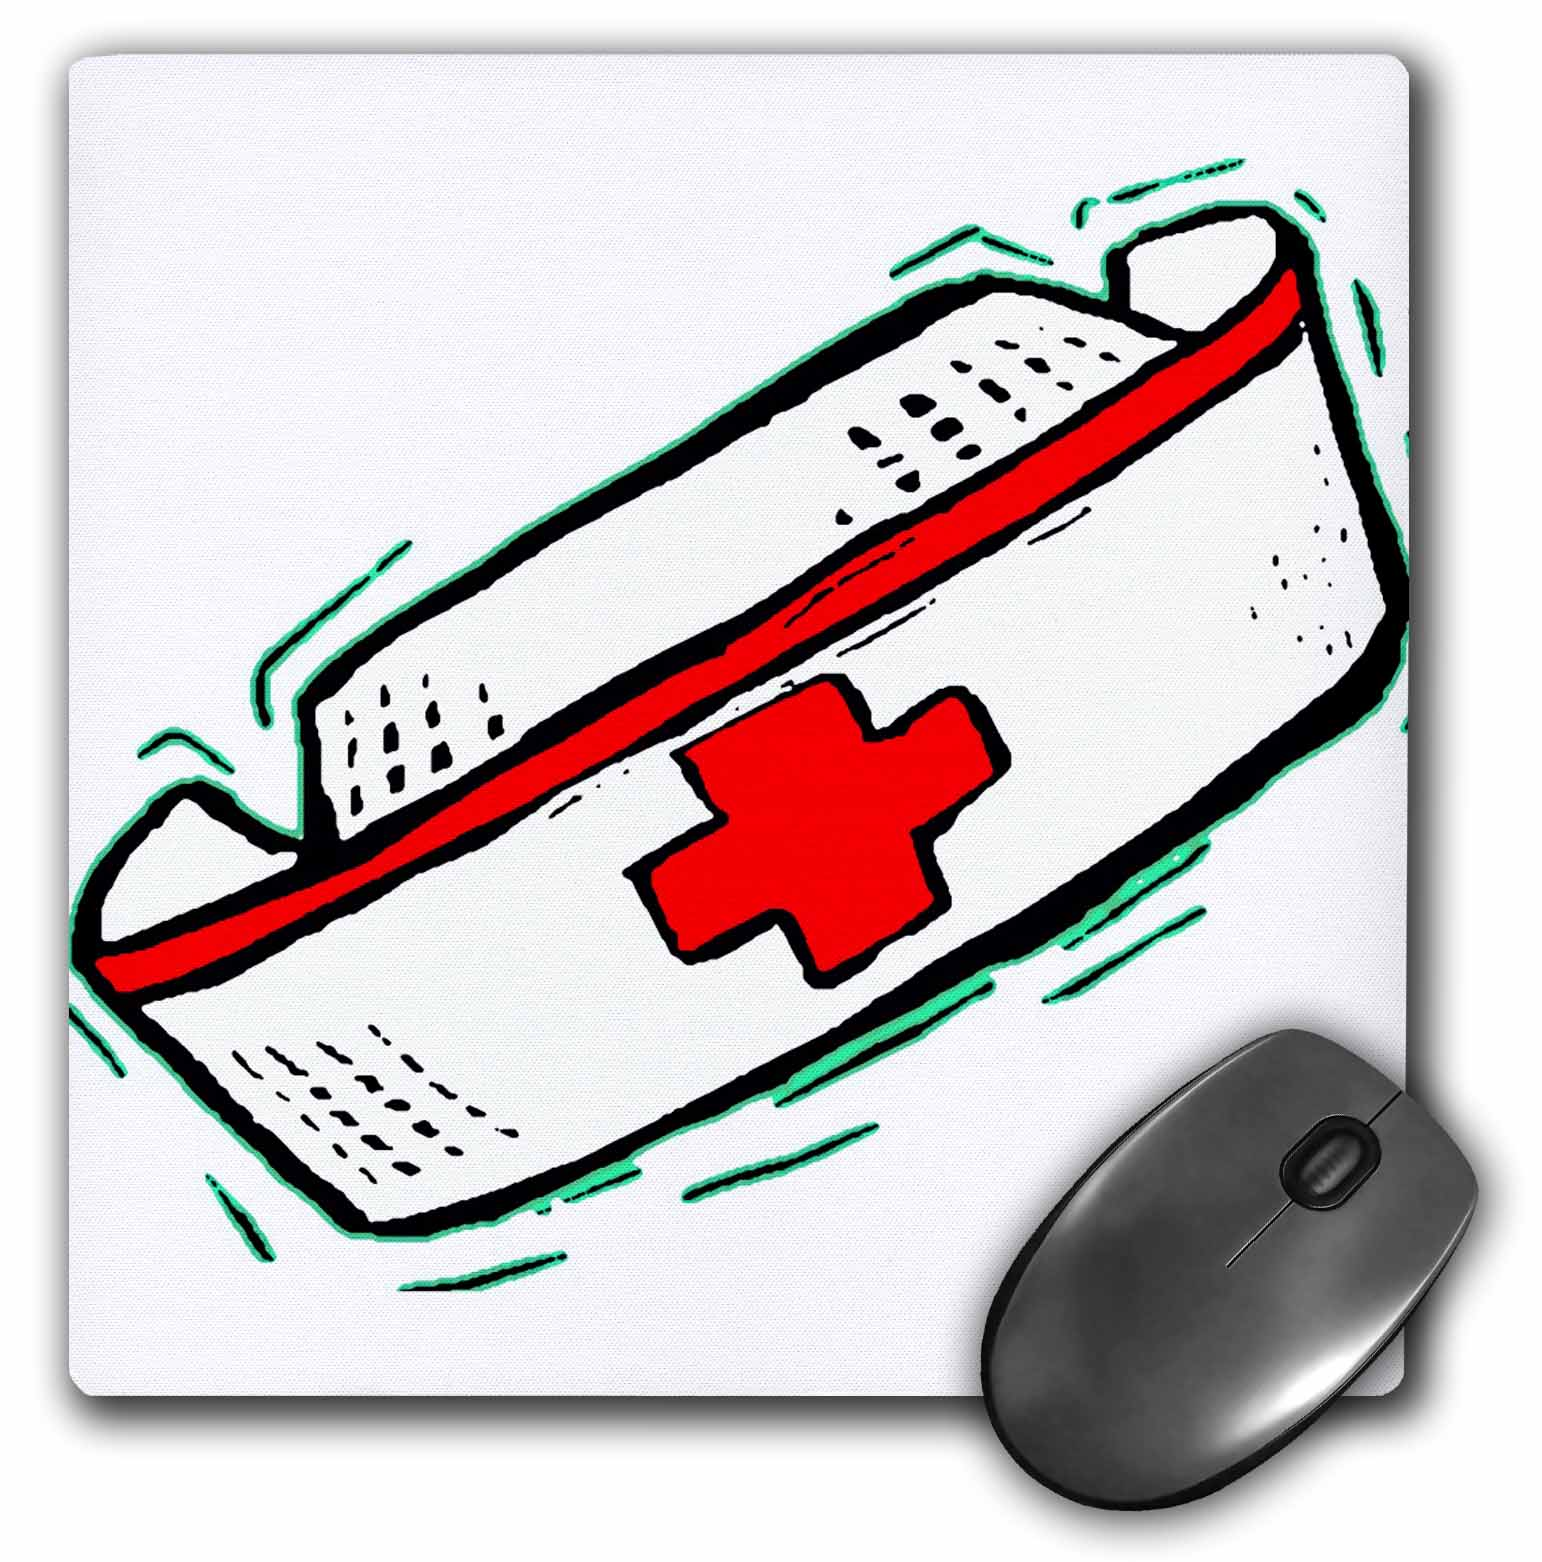 3dRose Nurses Cap, Mouse Pad, 8 by 8 inches